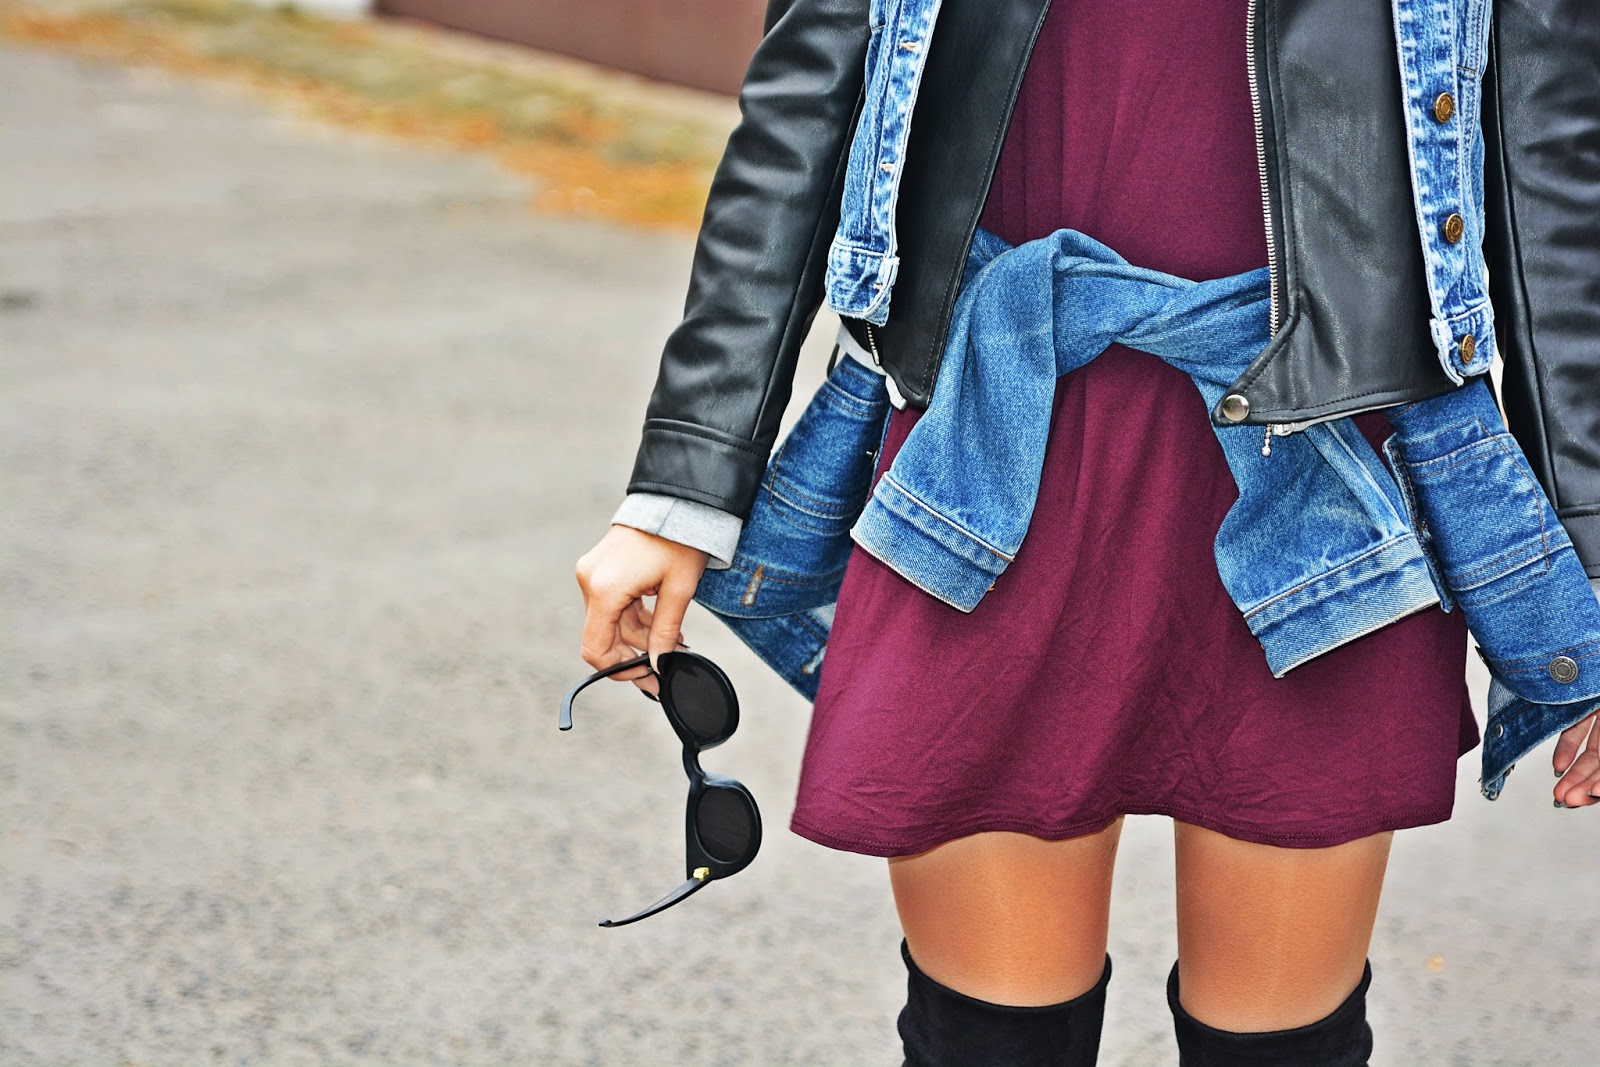 burgundy_dress_biker_jacket_high_knee_boots_karyn45